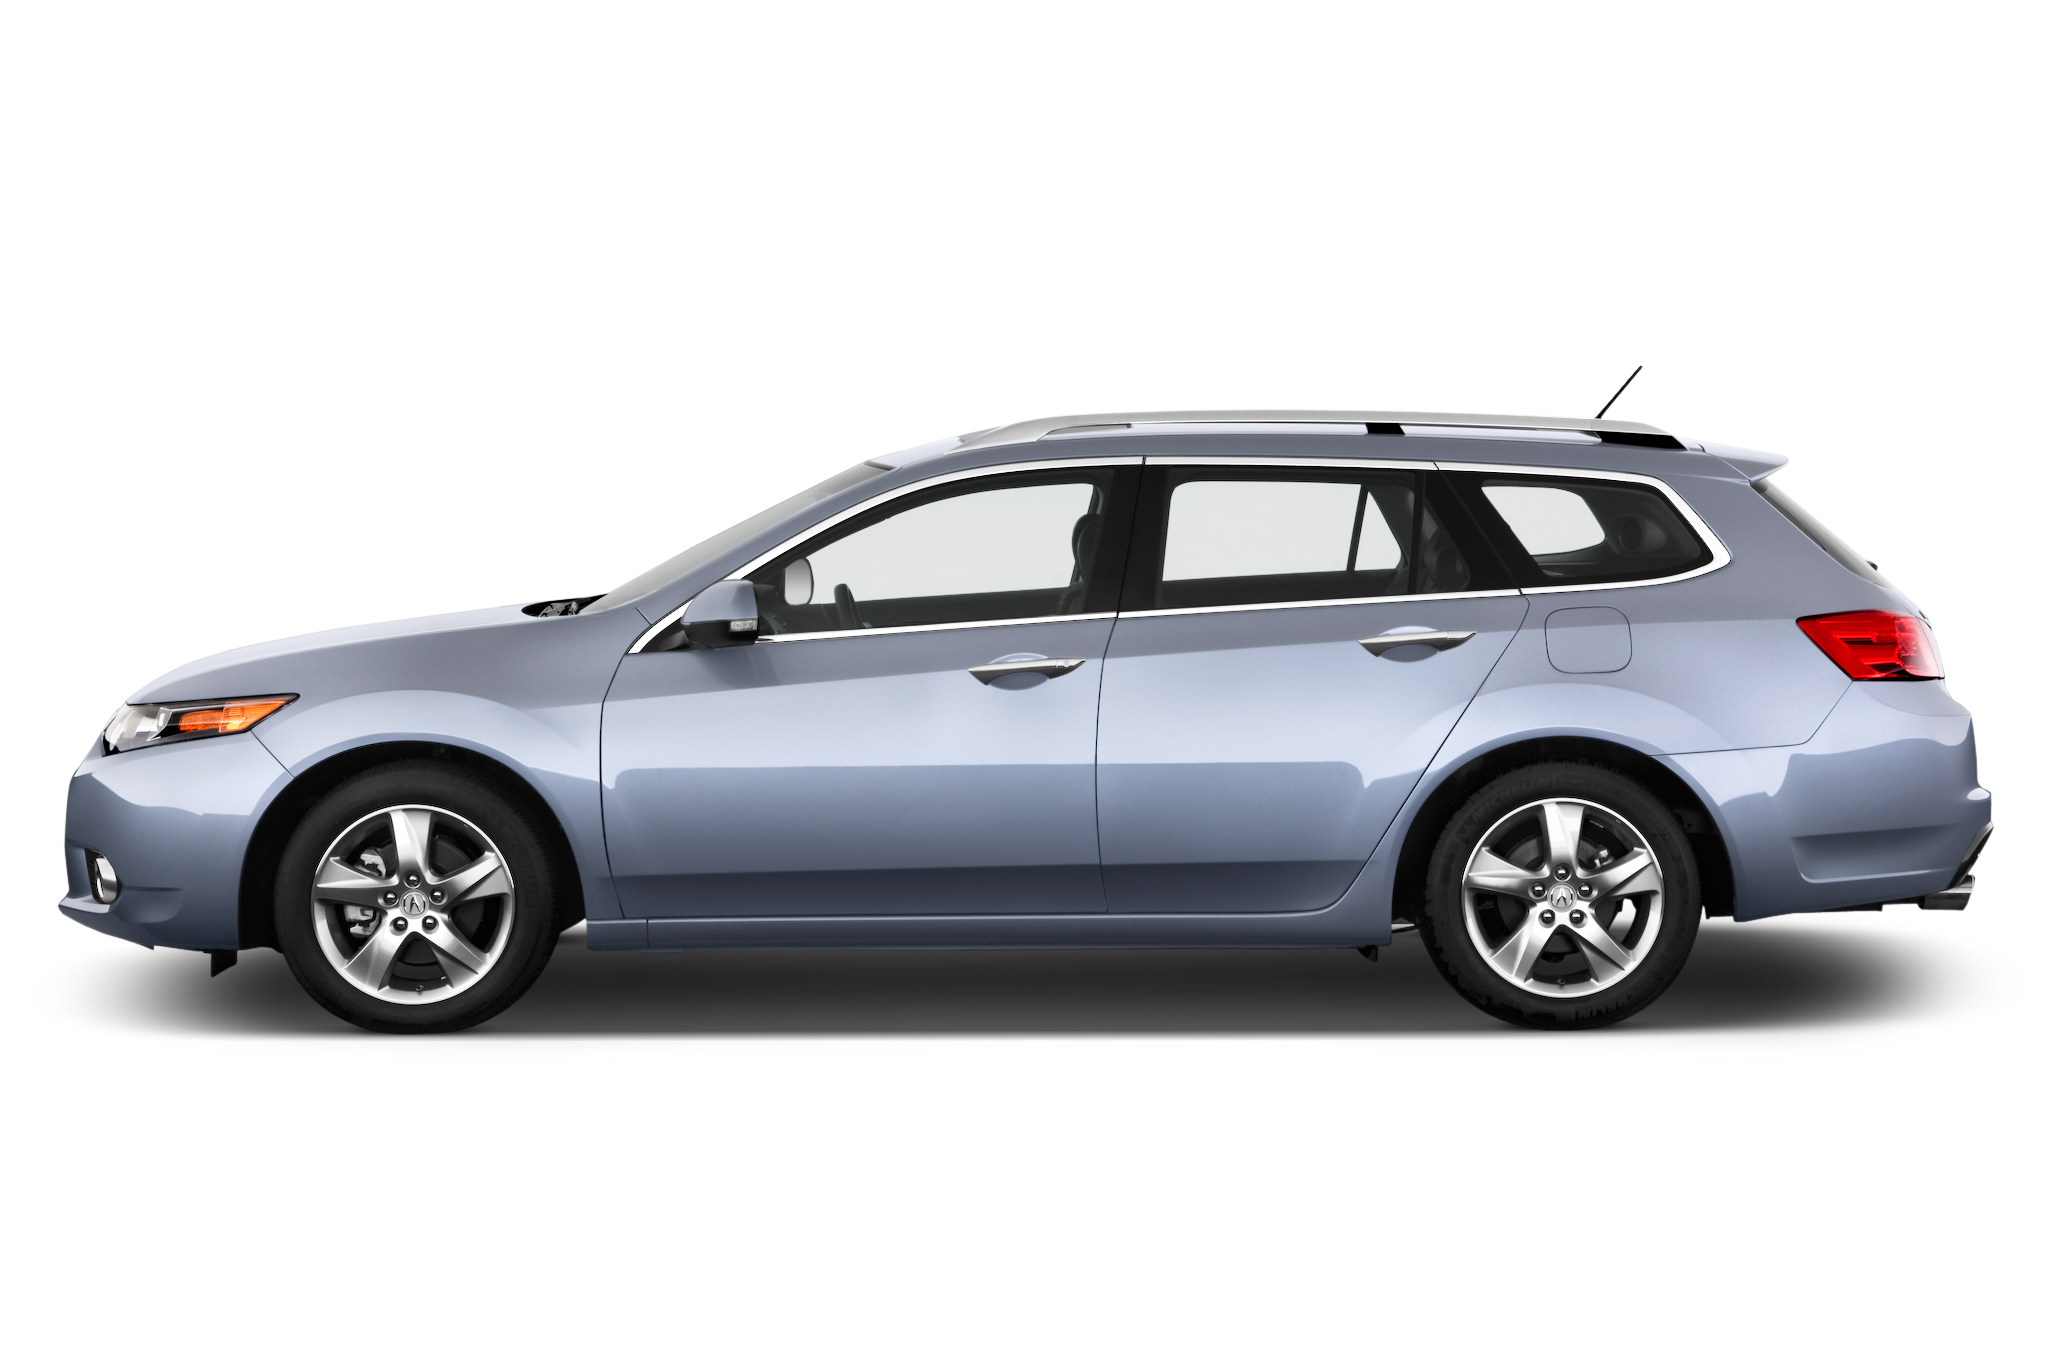 2014 Acura TSX Pricing Inches Up $125, Starts From $31,530